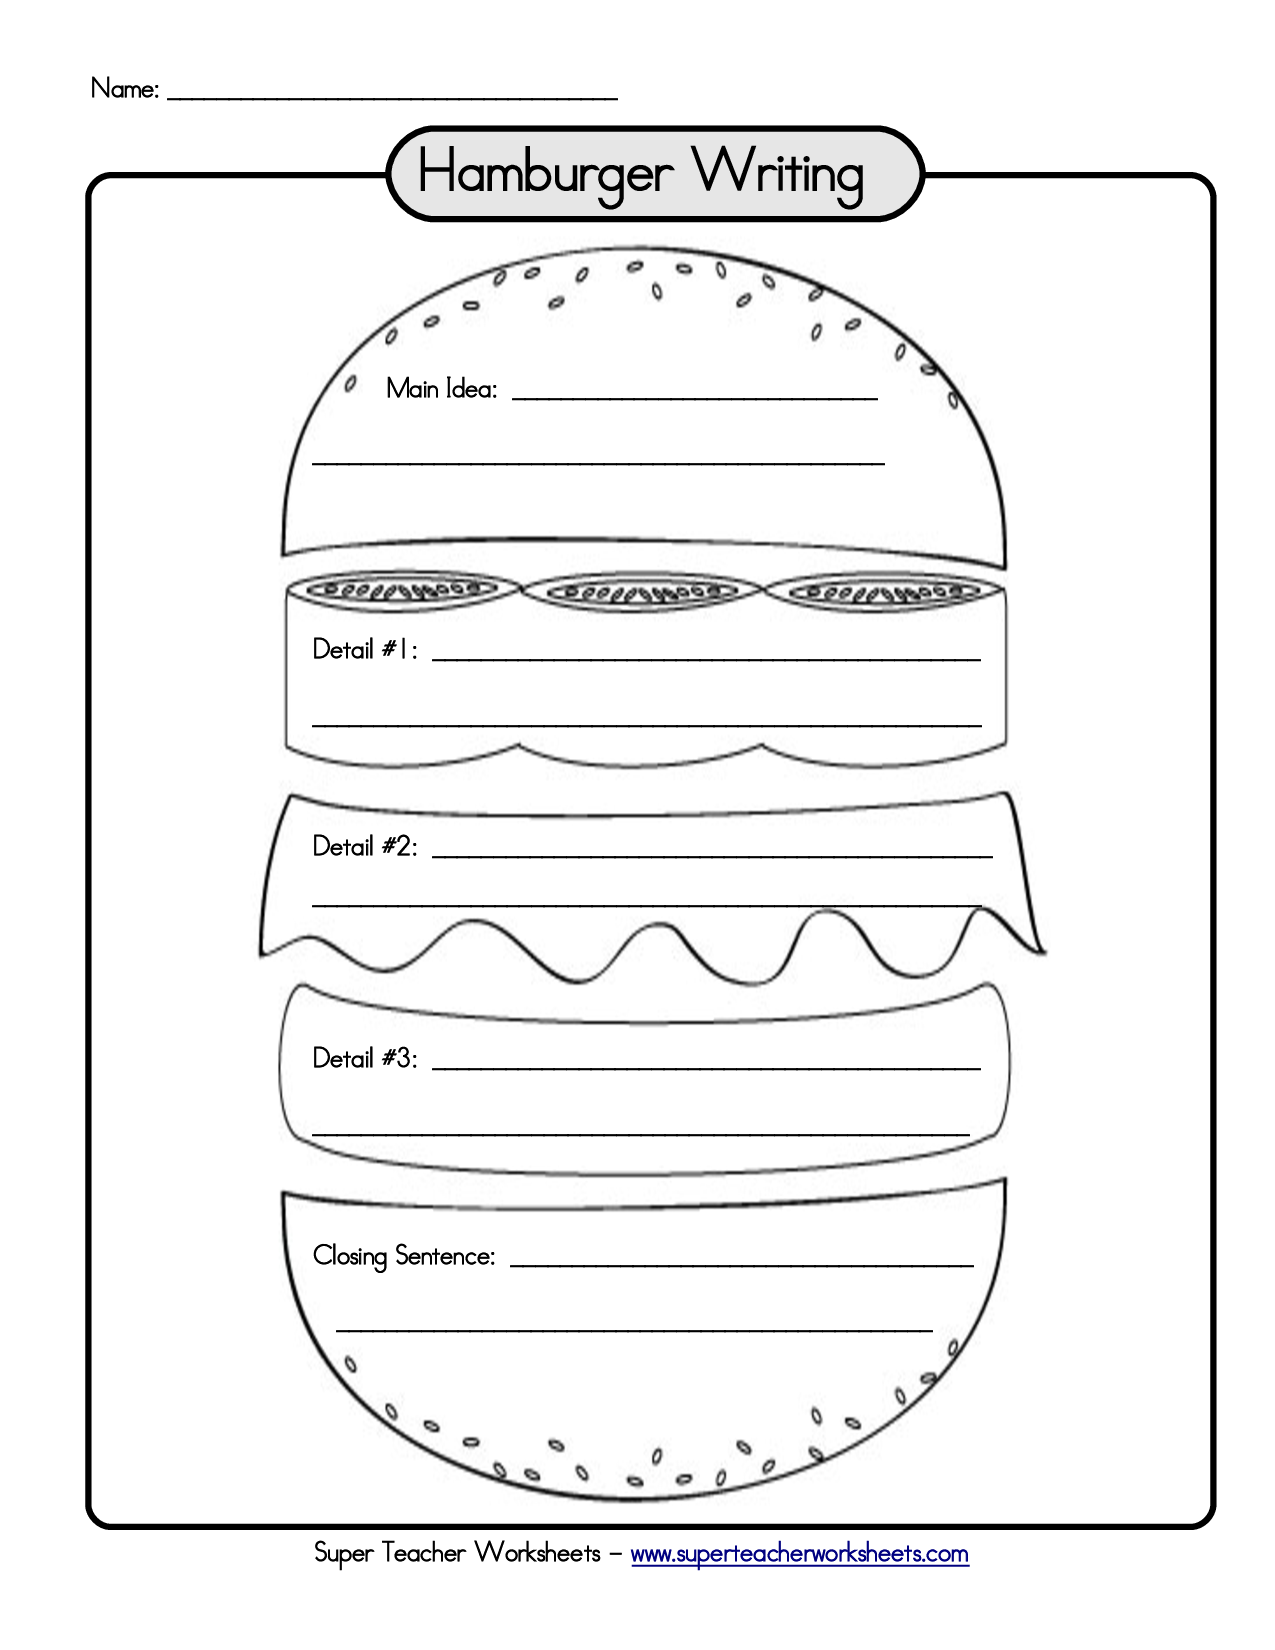 hamburger graphic organizer writing paragraph links to a bunch of